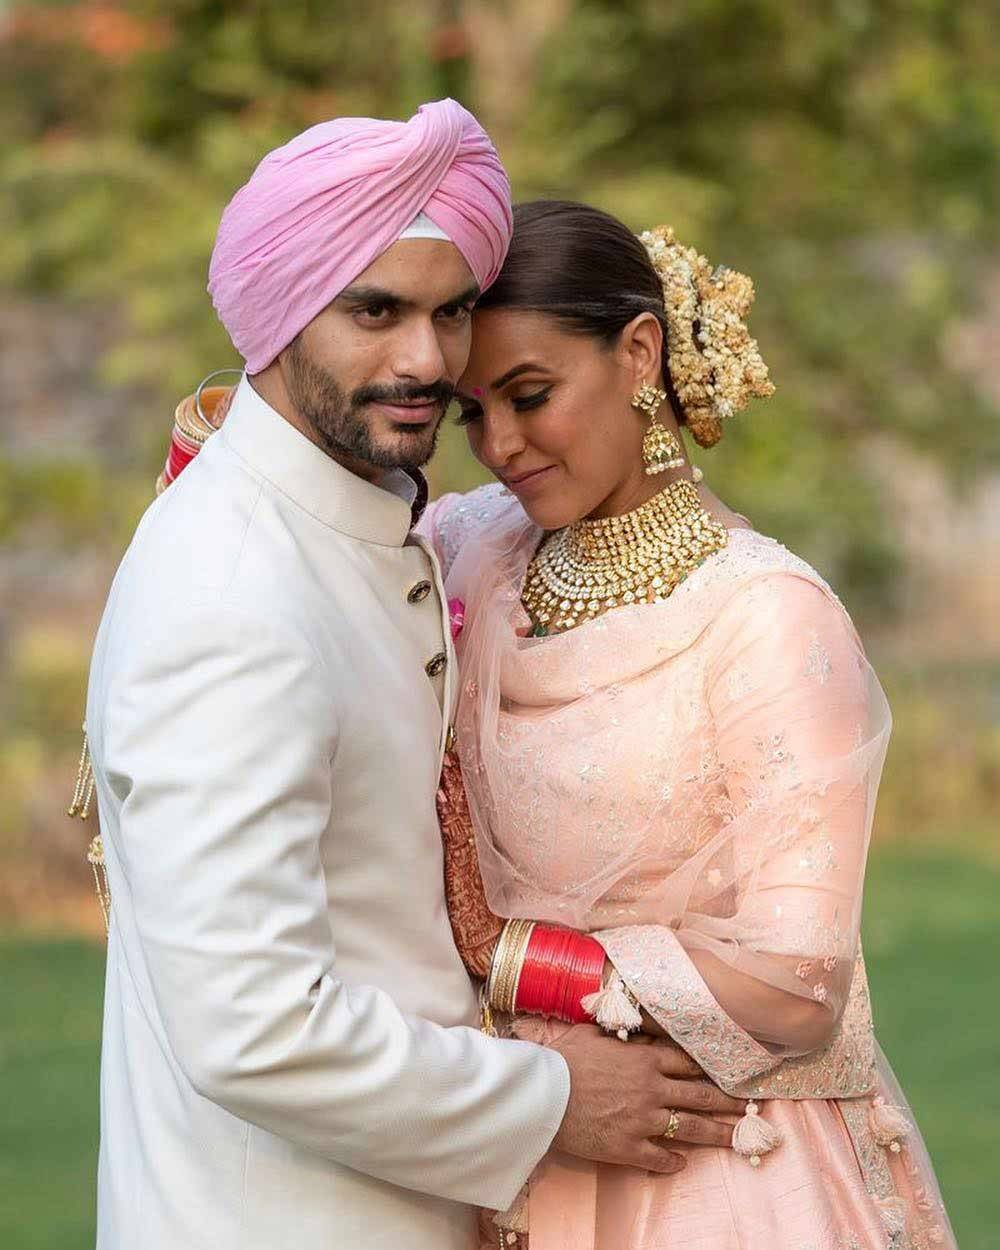 Neha Dhupia and Angad Bedi welcome their first child